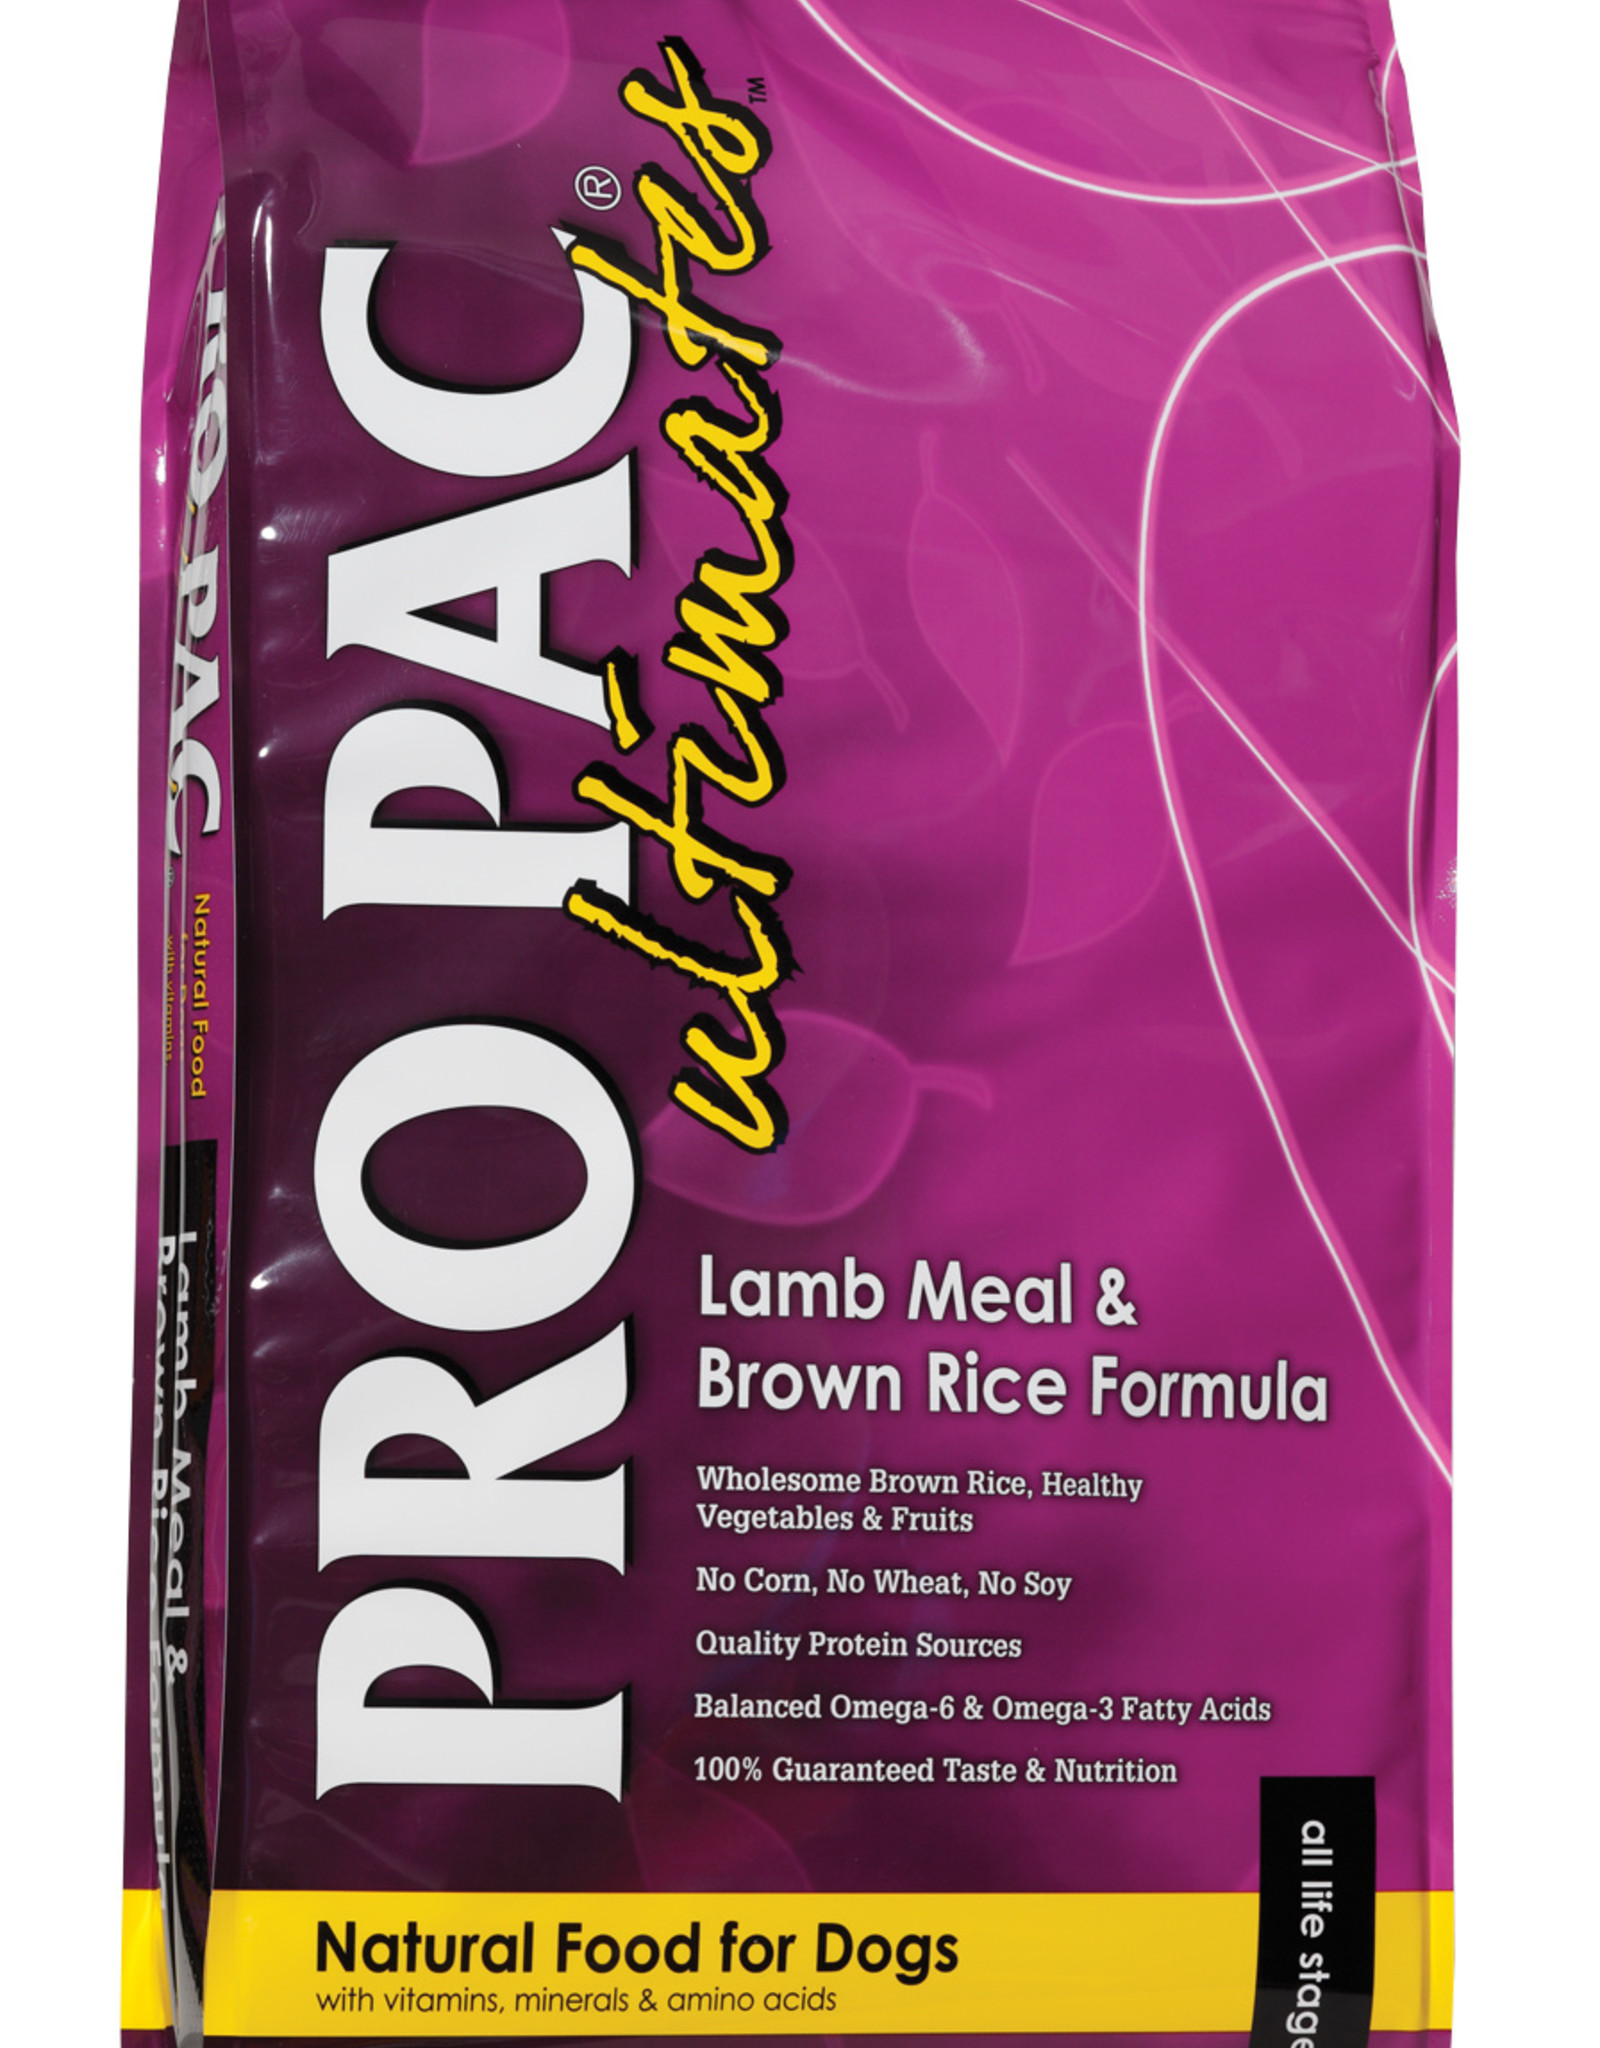 PRO PAC Ultimates PRO PAC Ultimates Dog Food Lamb Meal & Brown rice